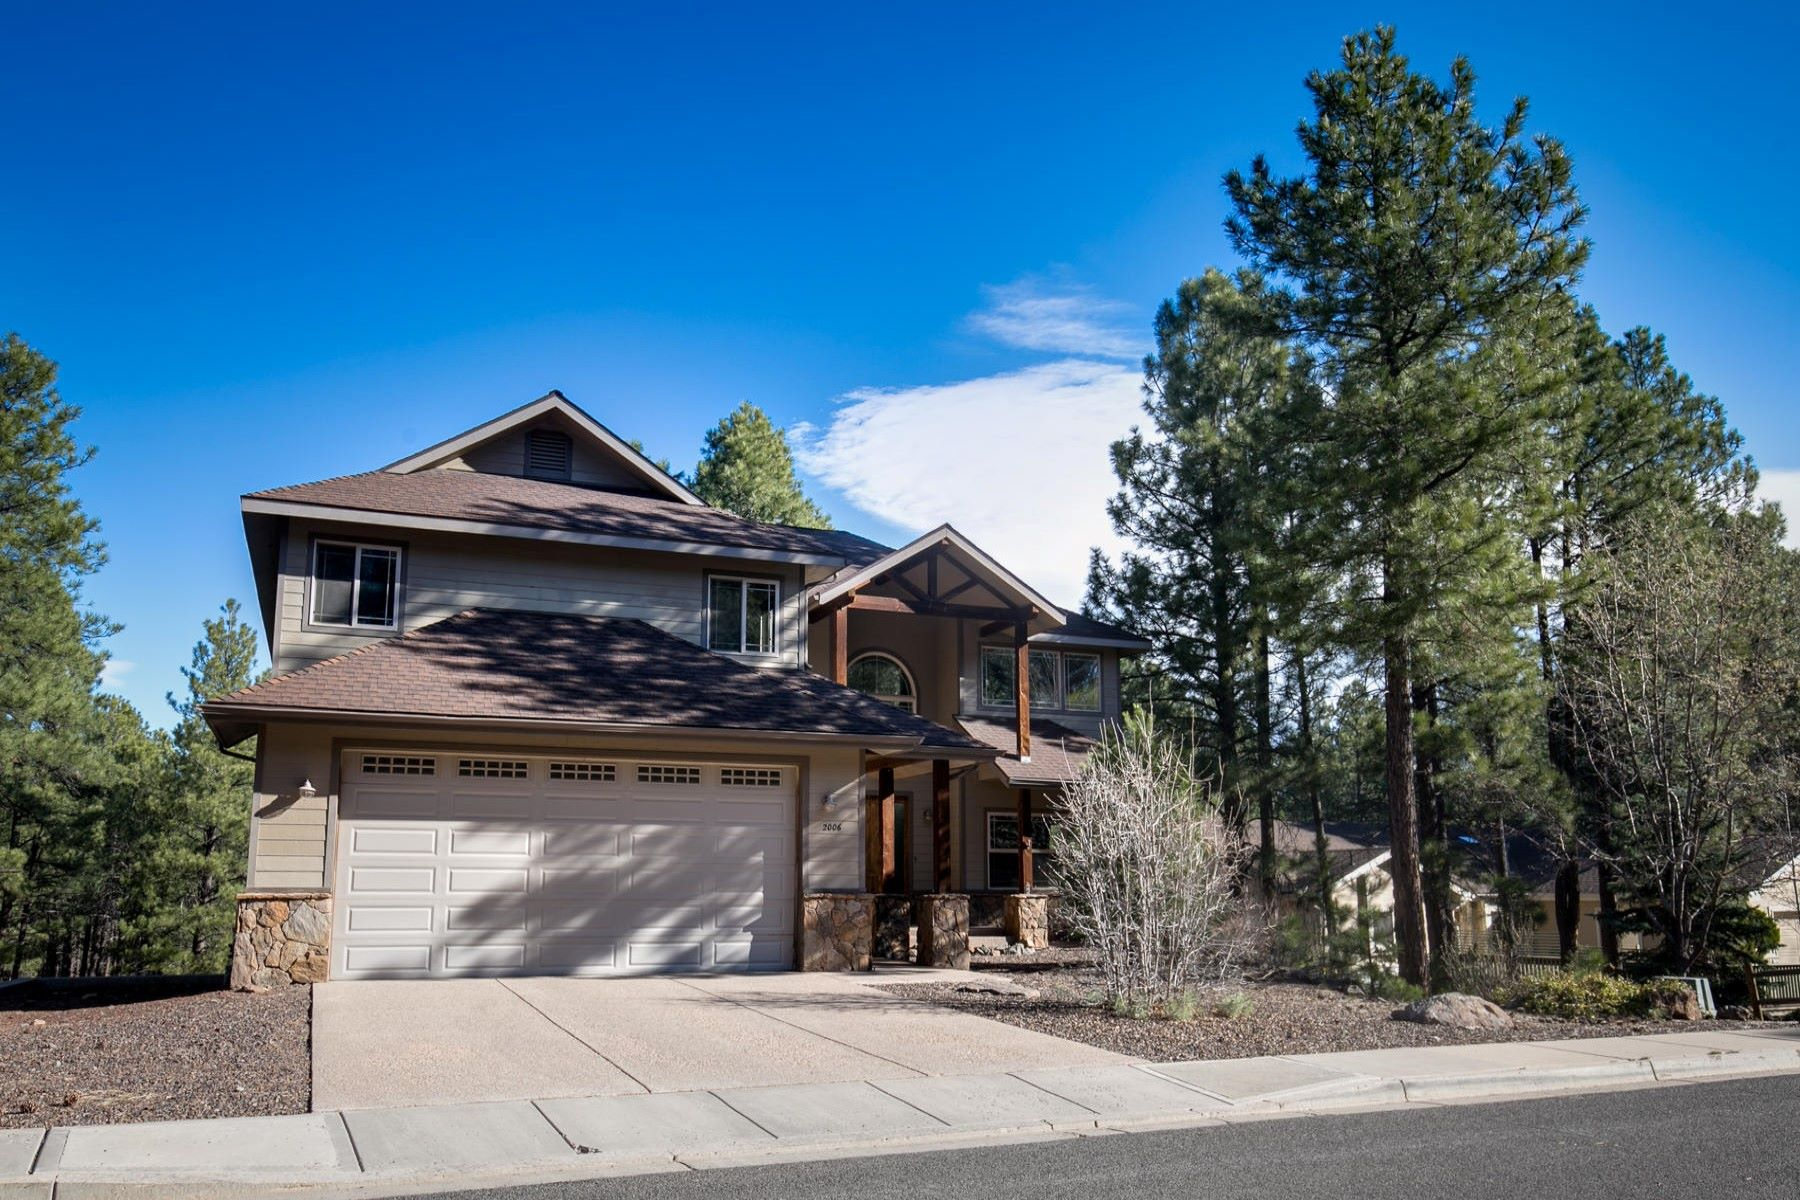 Moradia para Venda às Exquisite home in the ever-popular Boulder Pointe neighborhood 2006 S Tombaugh Way Flagstaff, Arizona, 86001 Estados Unidos